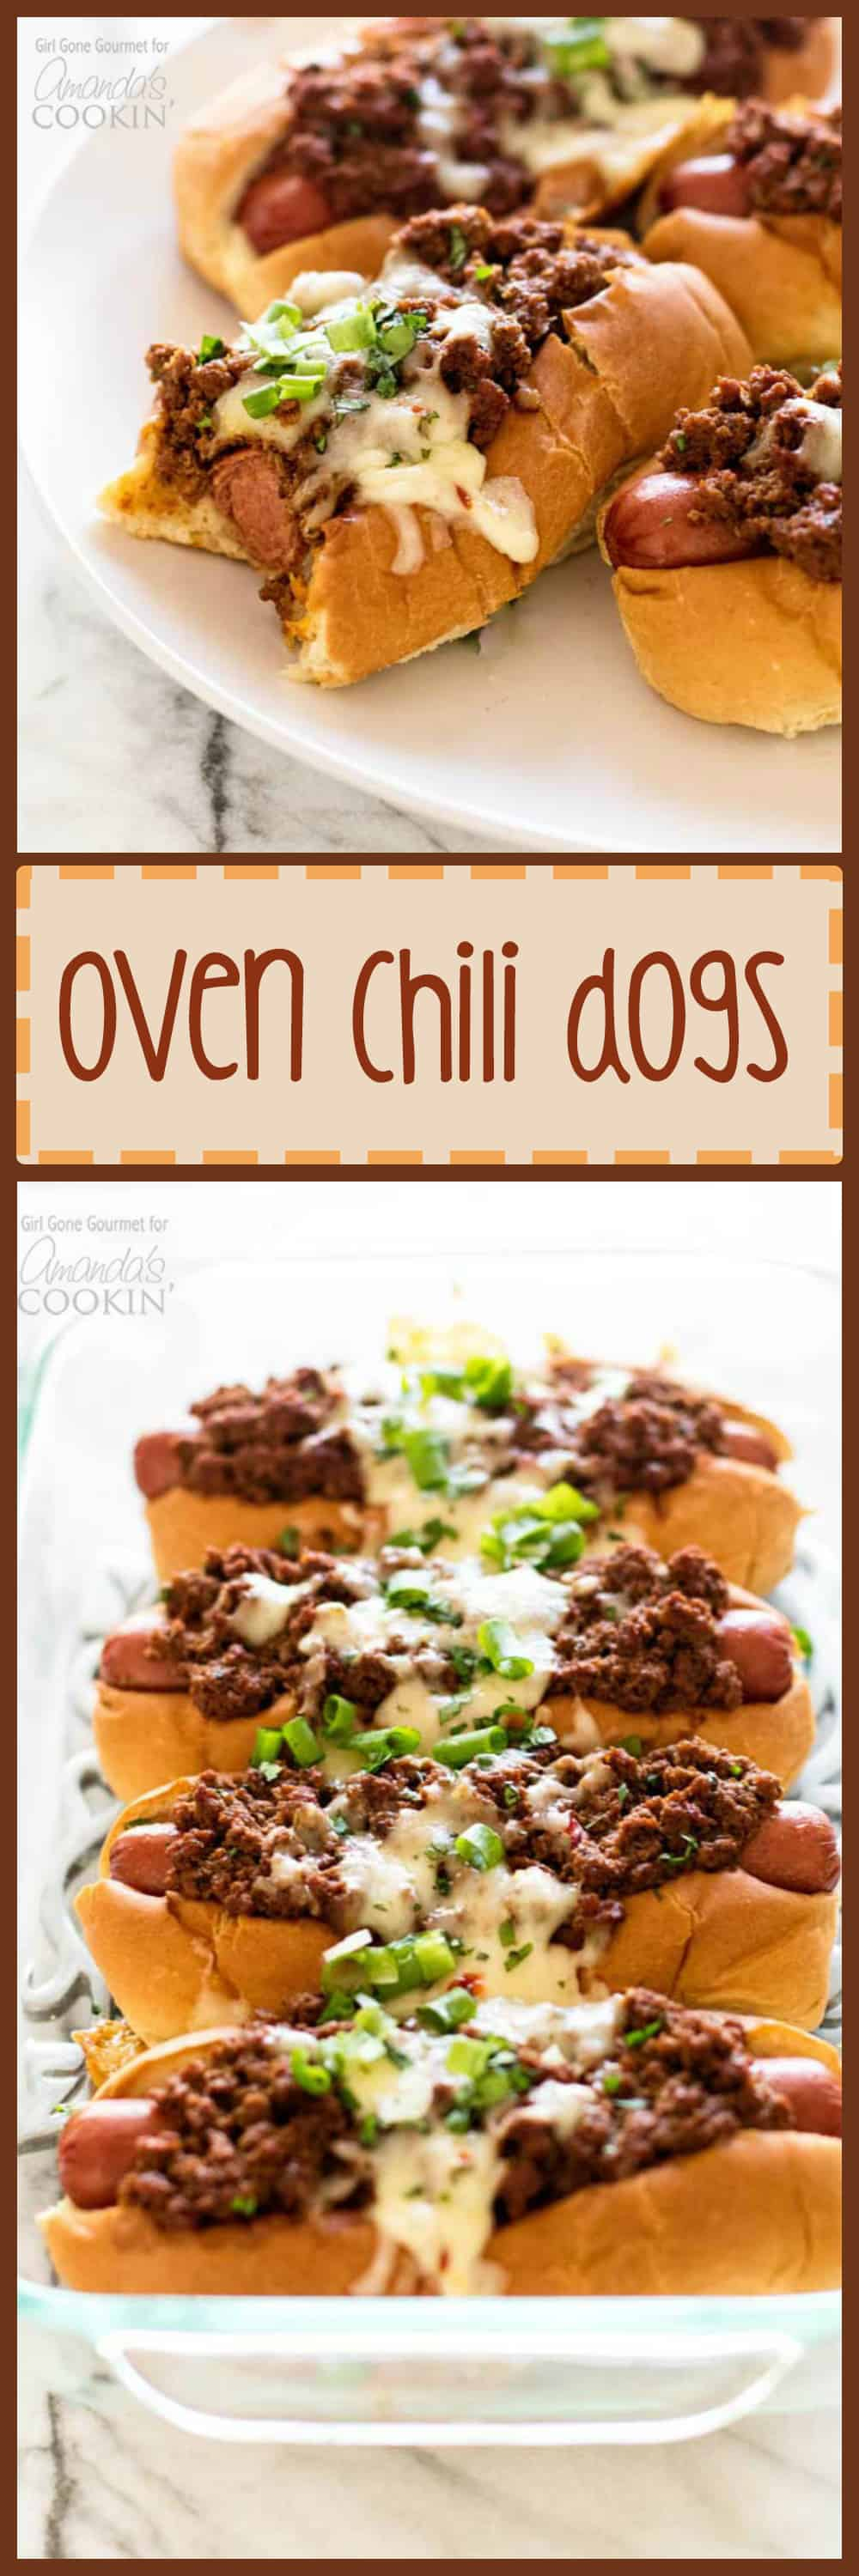 Hot dogs topped with a simple and flavorful chili, pepper jack cheese, and fresh green onions - these oven chili dogs are always a crowd favorite!